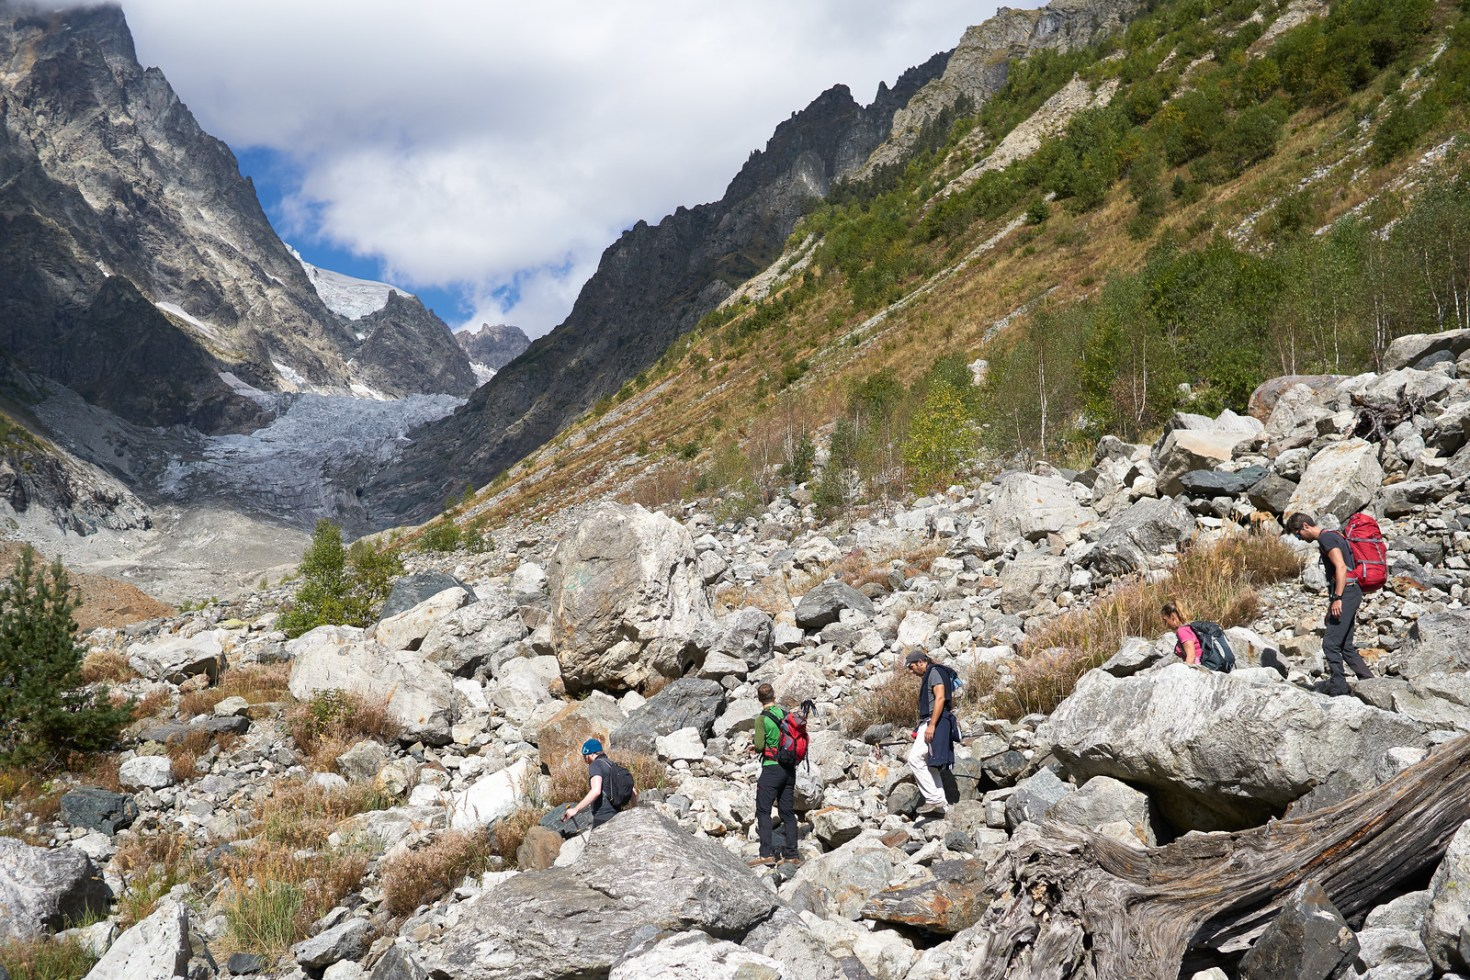 Our hike towards the glacier